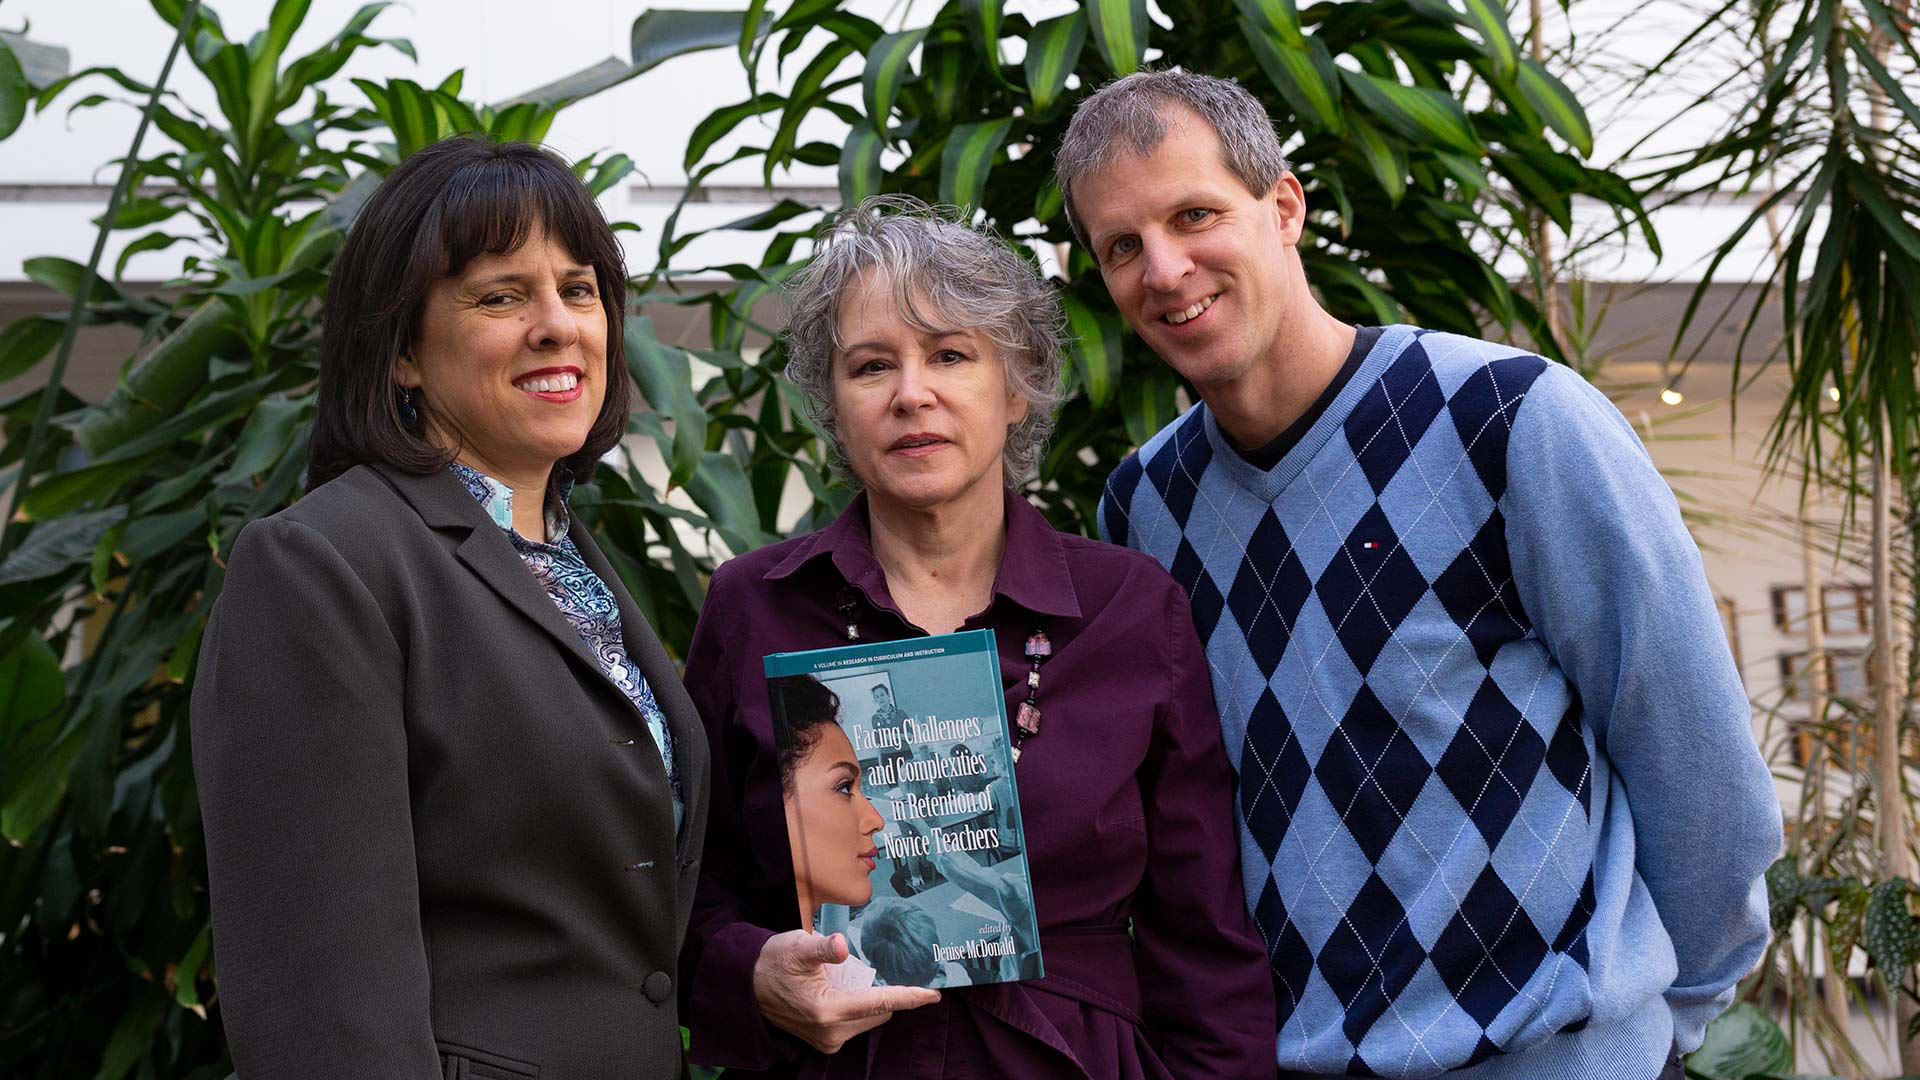 College of Education profs collaborate on research exploring issues facing novice teachers